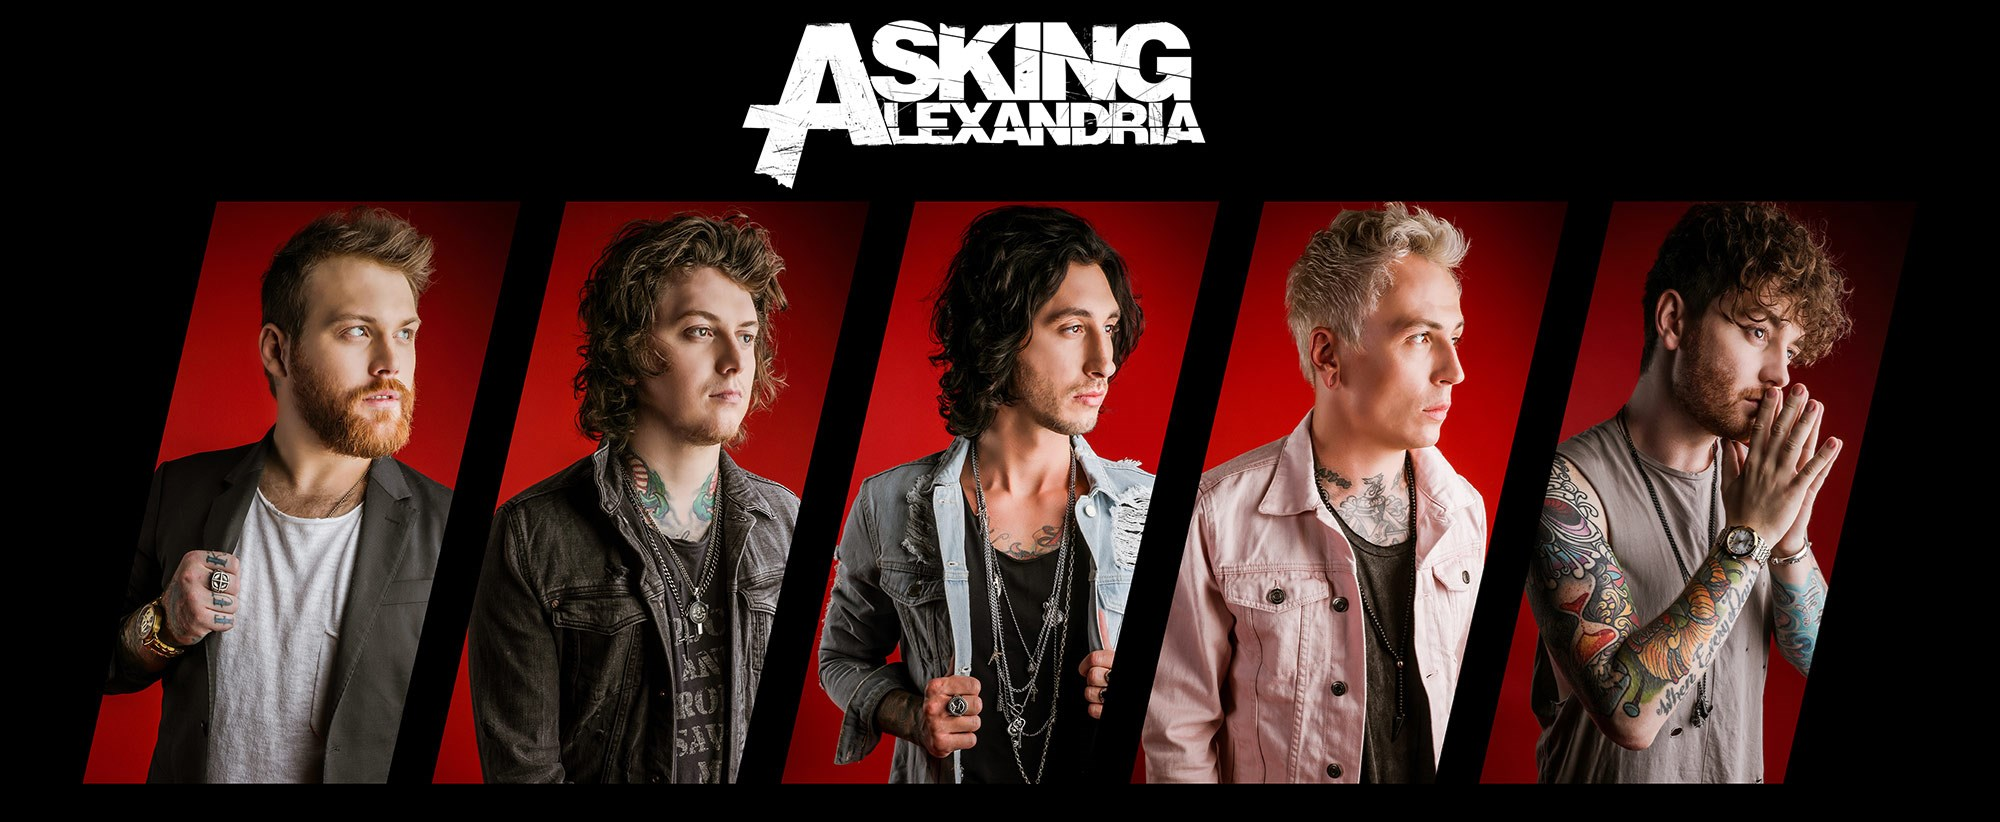 Meet asking alexandria 1029 the hog enter to win your way in to mindys exclusive liquid lunch acoustic performance and meet greet with asking alexandria on friday jan 19th at noon at the m4hsunfo